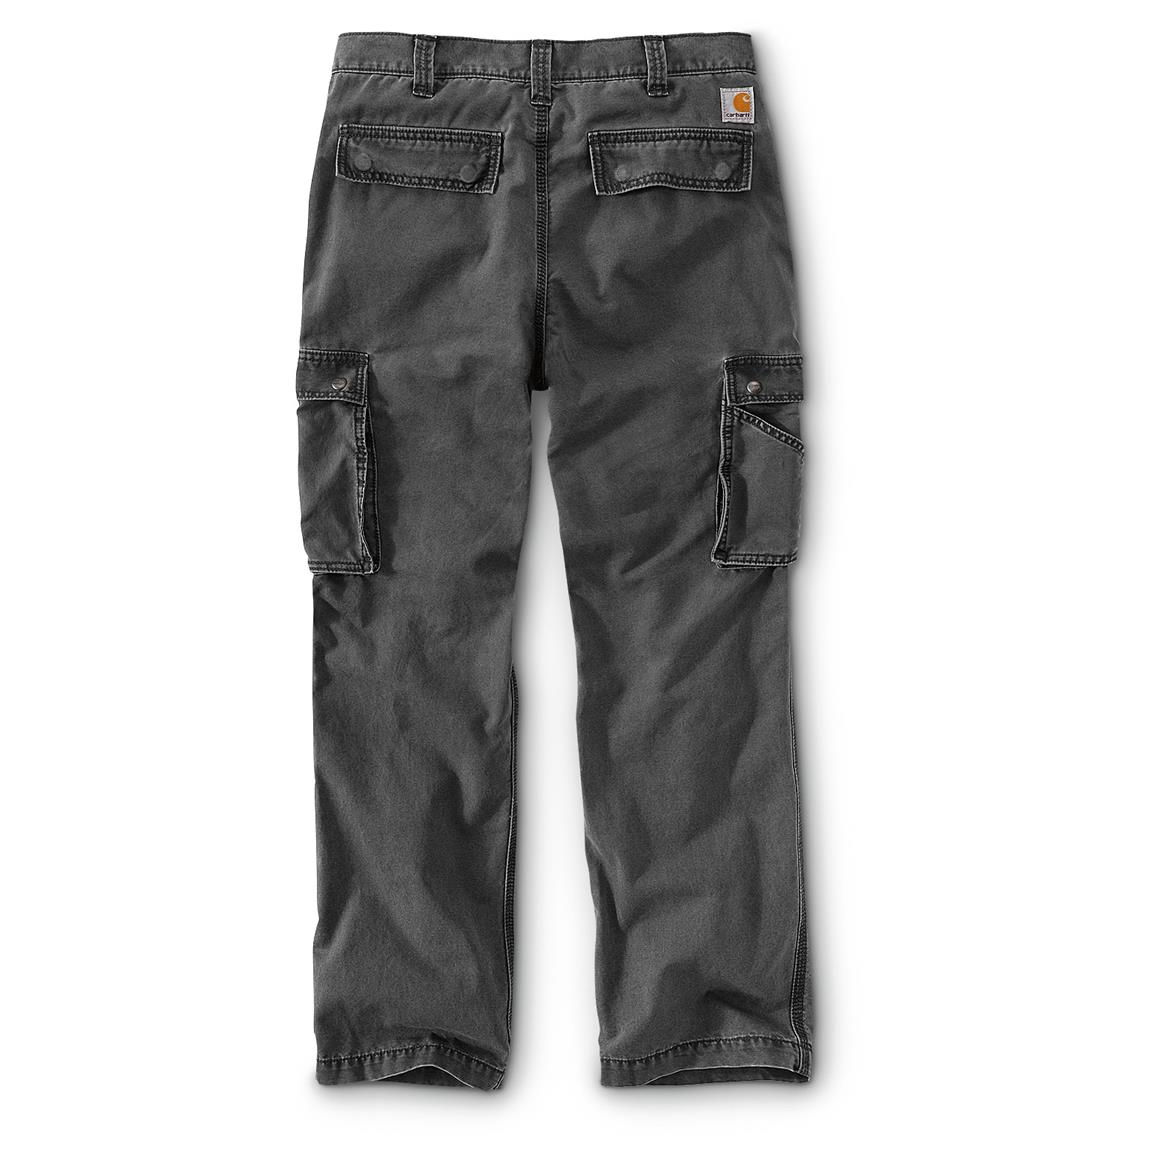 Carhartt Rugged Cargo Pants, Gravel